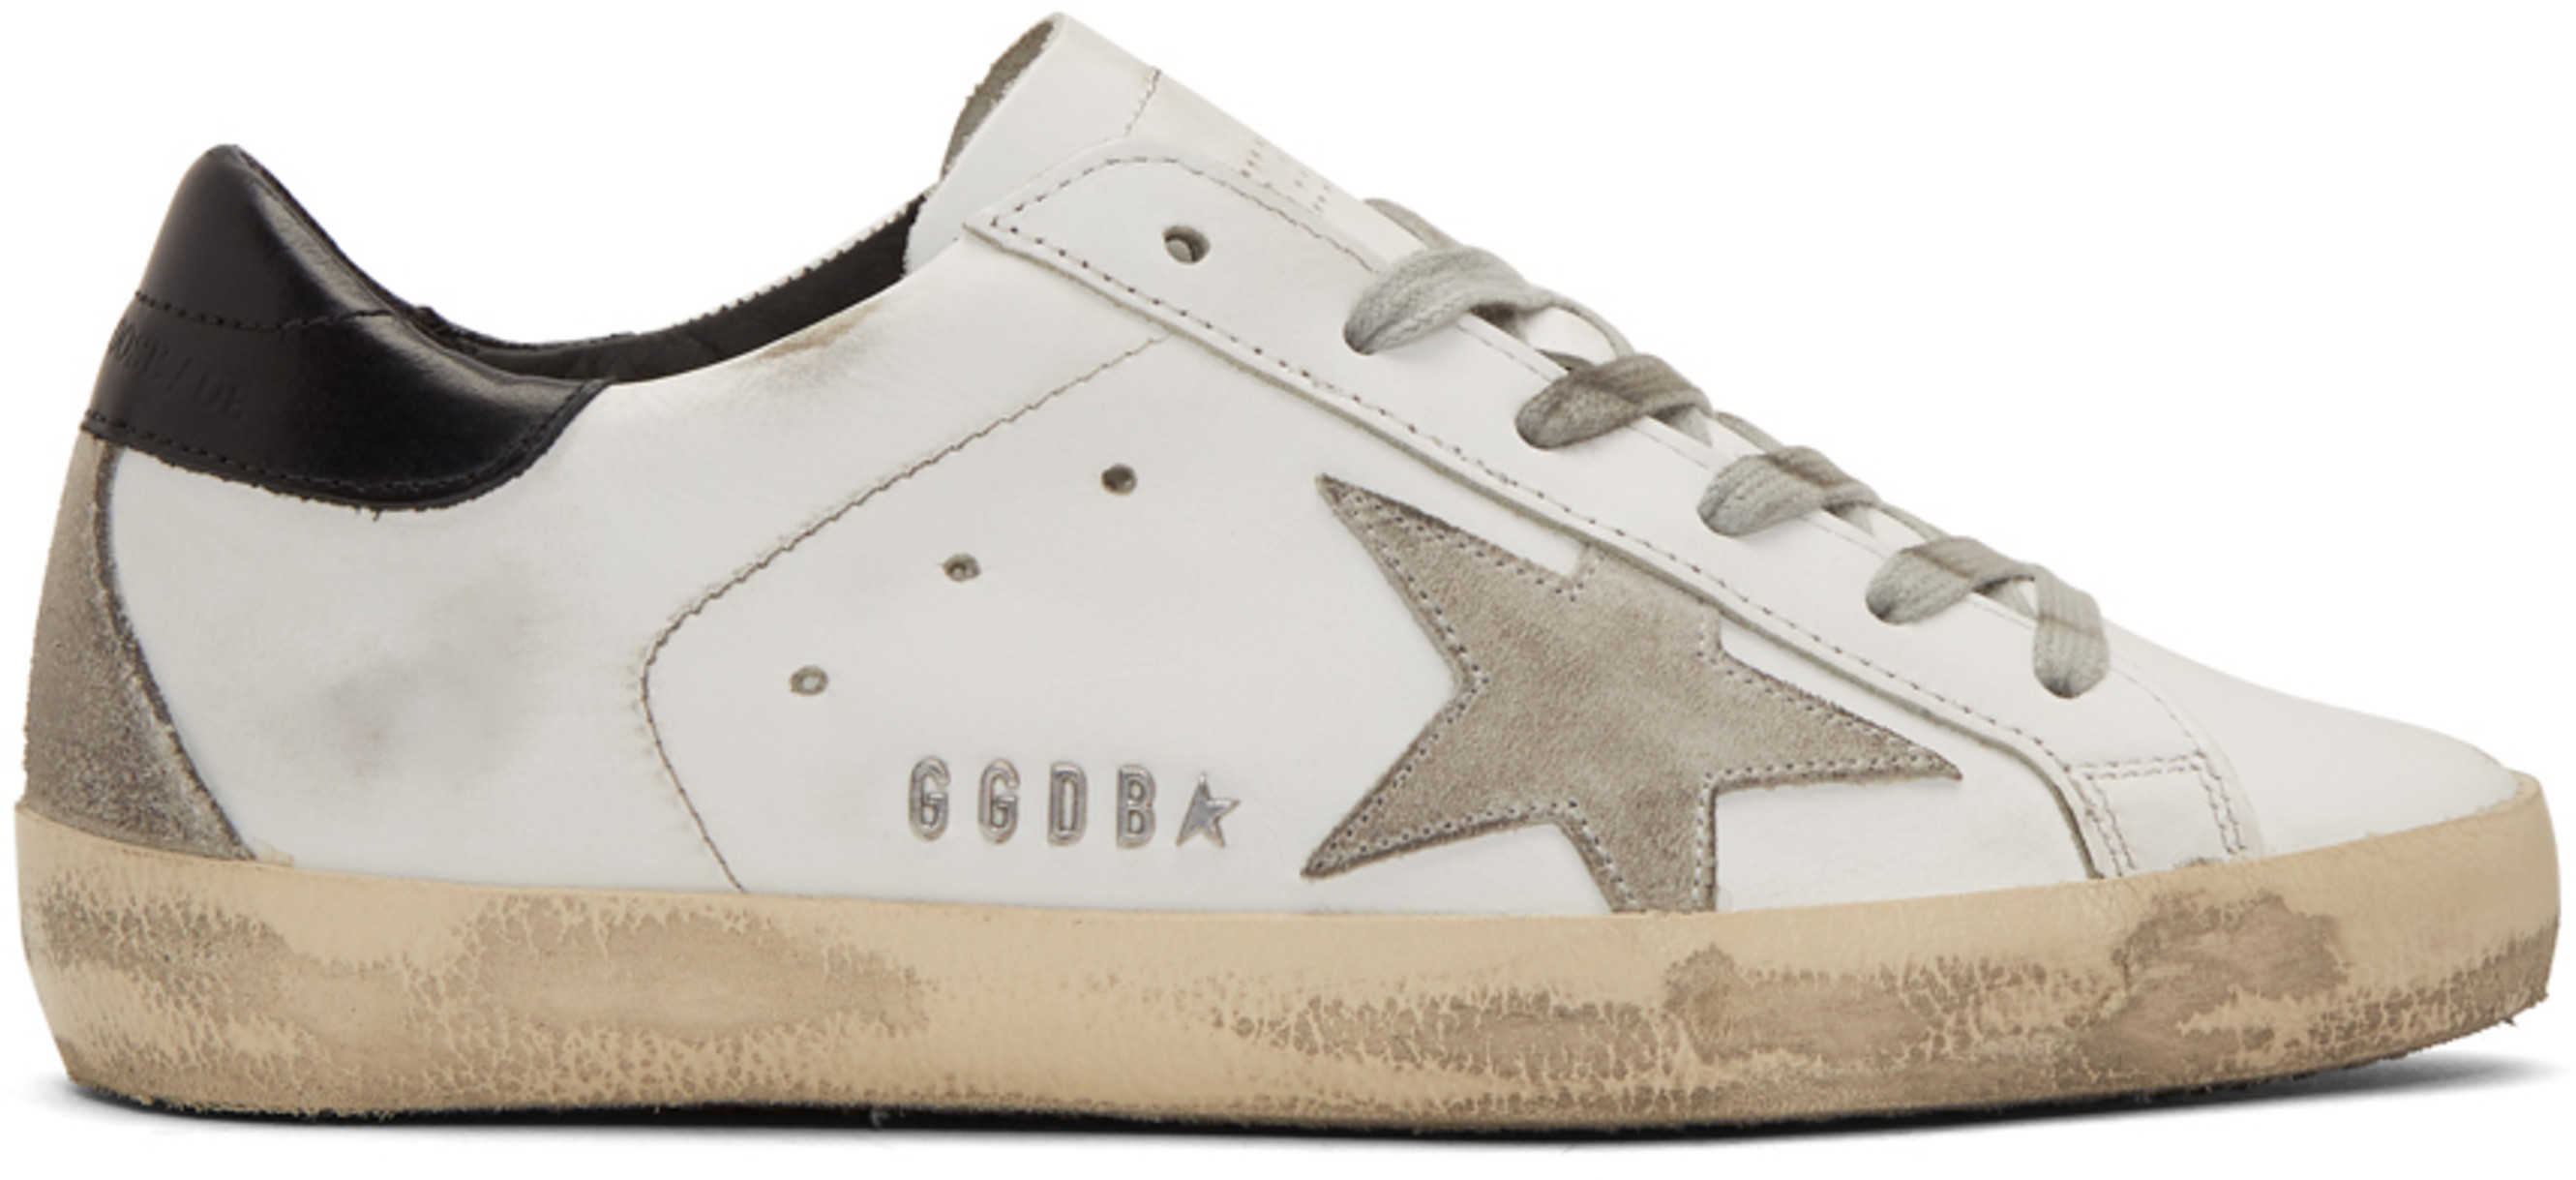 d6eebb02d5bc Golden Goose for Women SS19 Collection